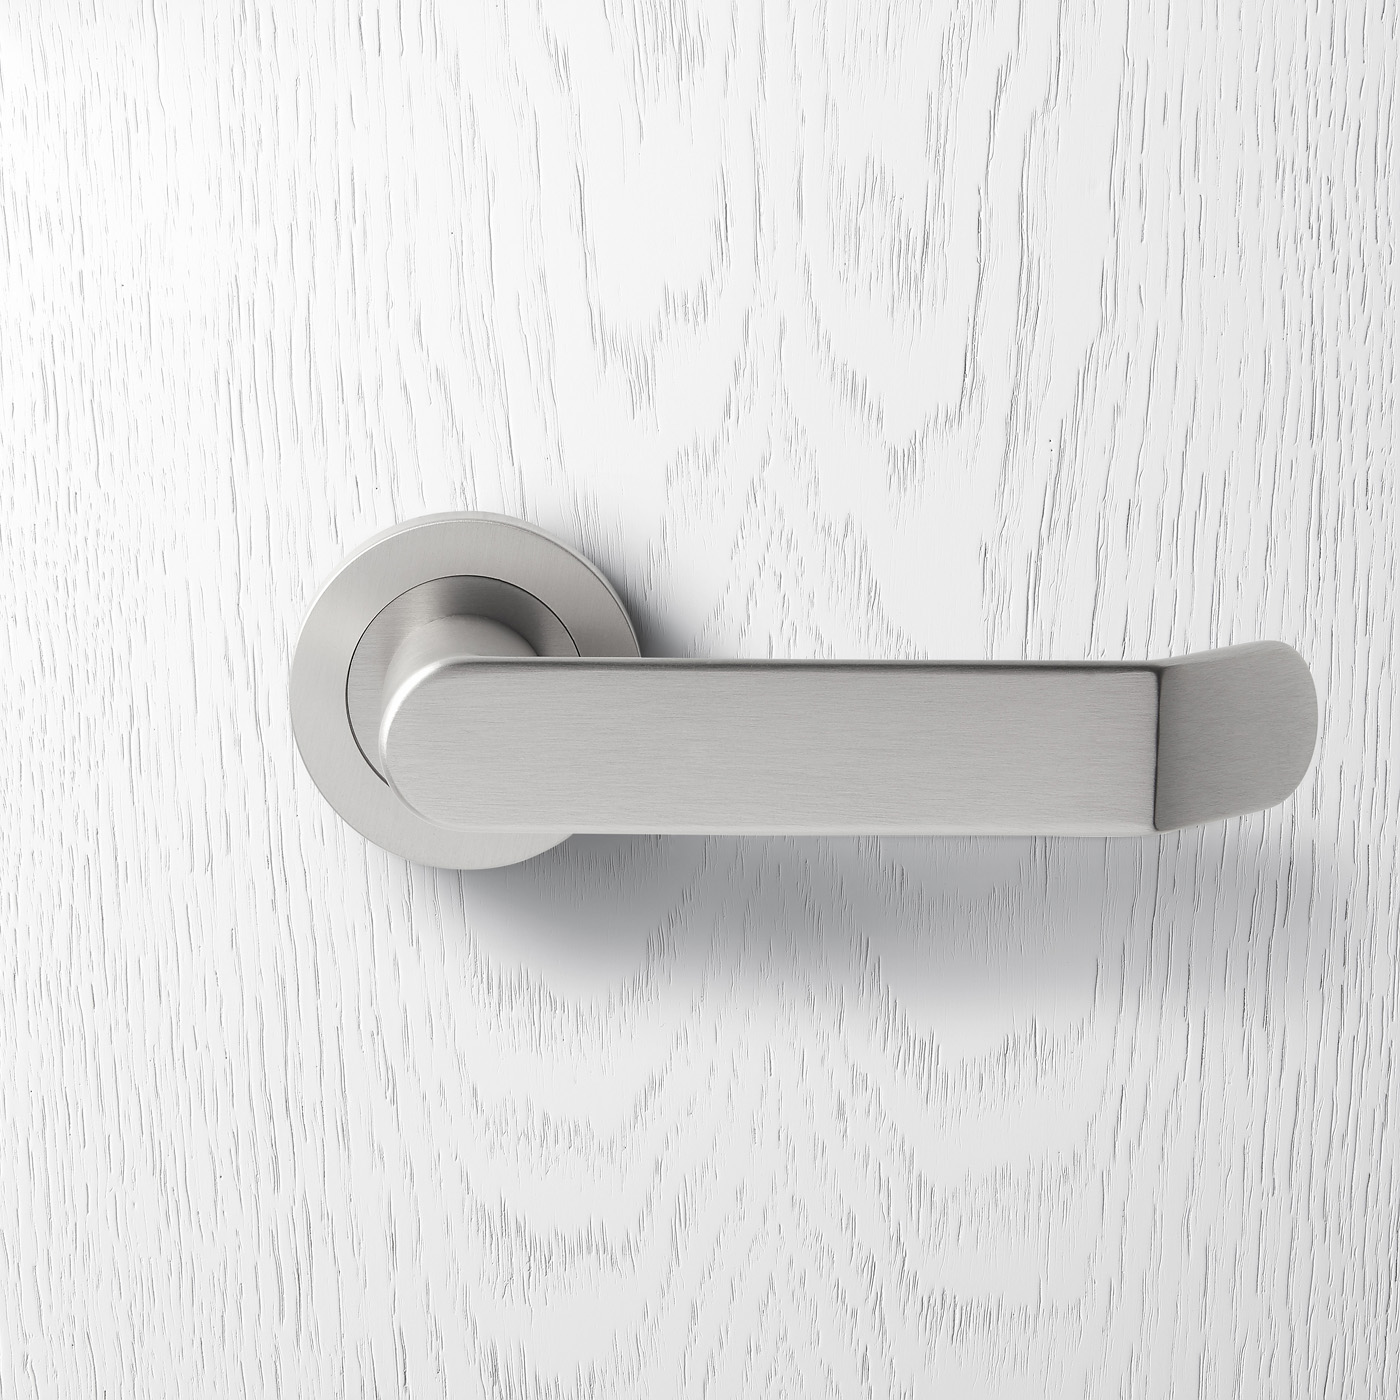 Dda Compliant Door Handles Dda Regulations For Door Vision